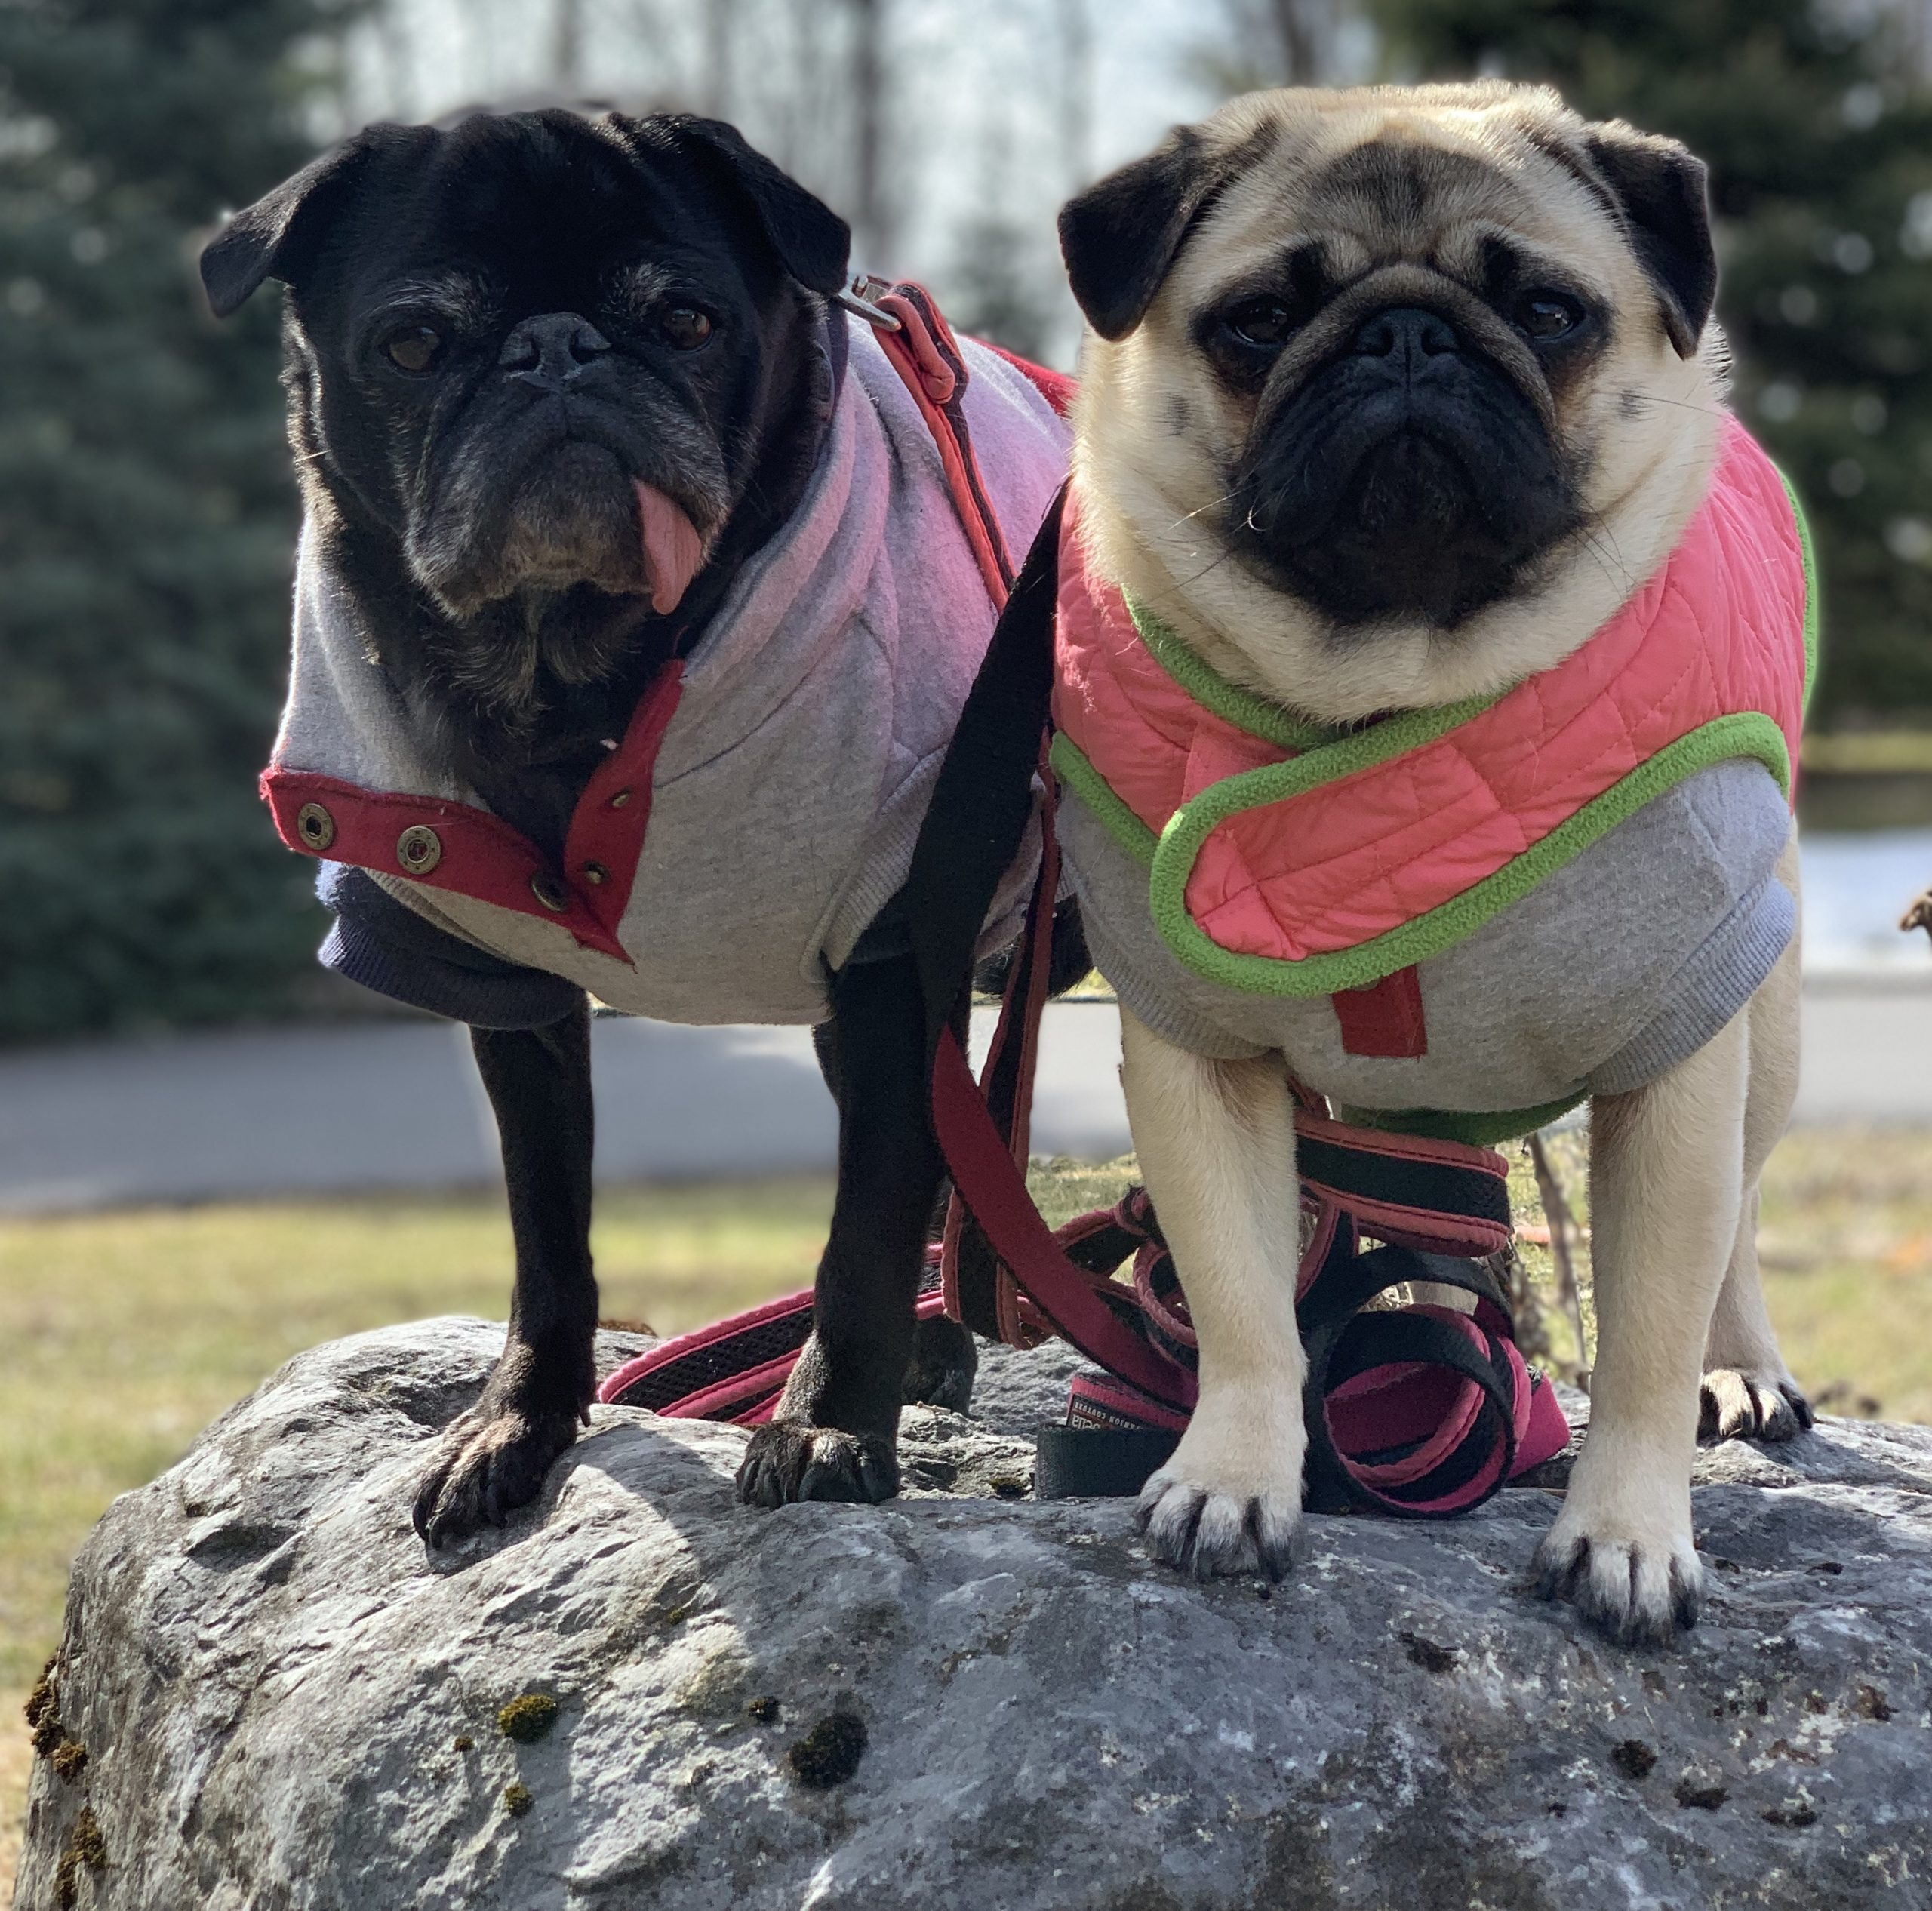 Edie and Edna's Social Distancing Diary Update for April 6, 2020